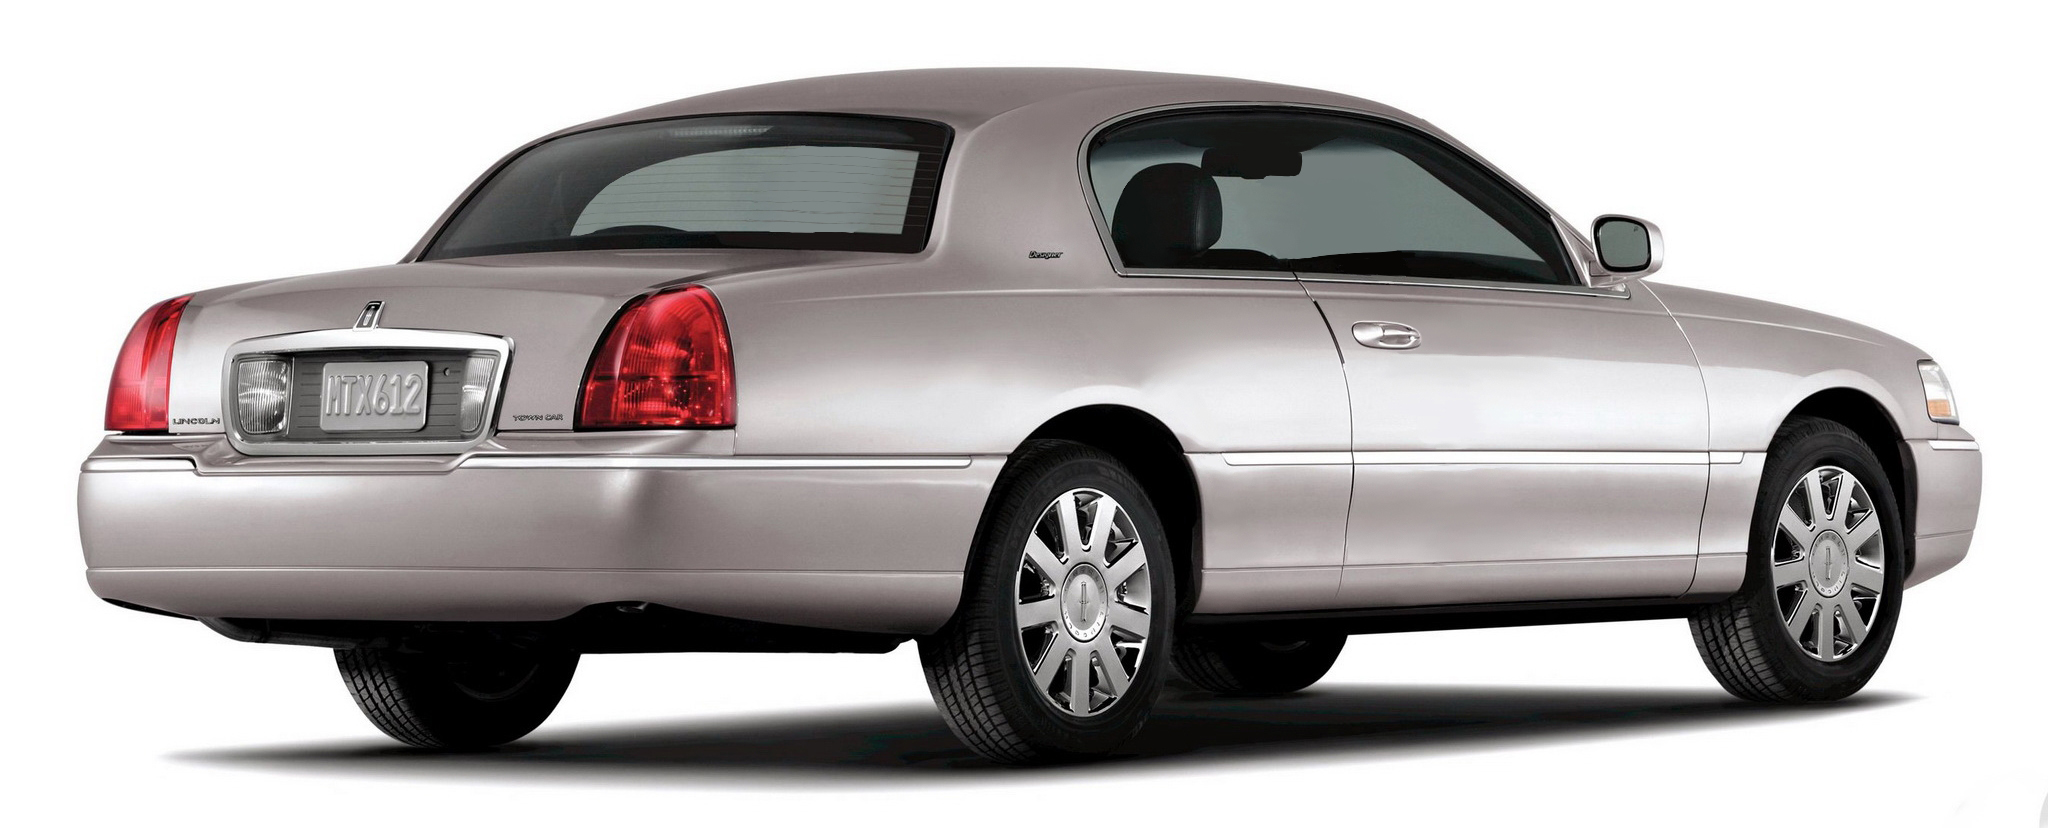 What If 2003 Lincoln Town Car Hardtop